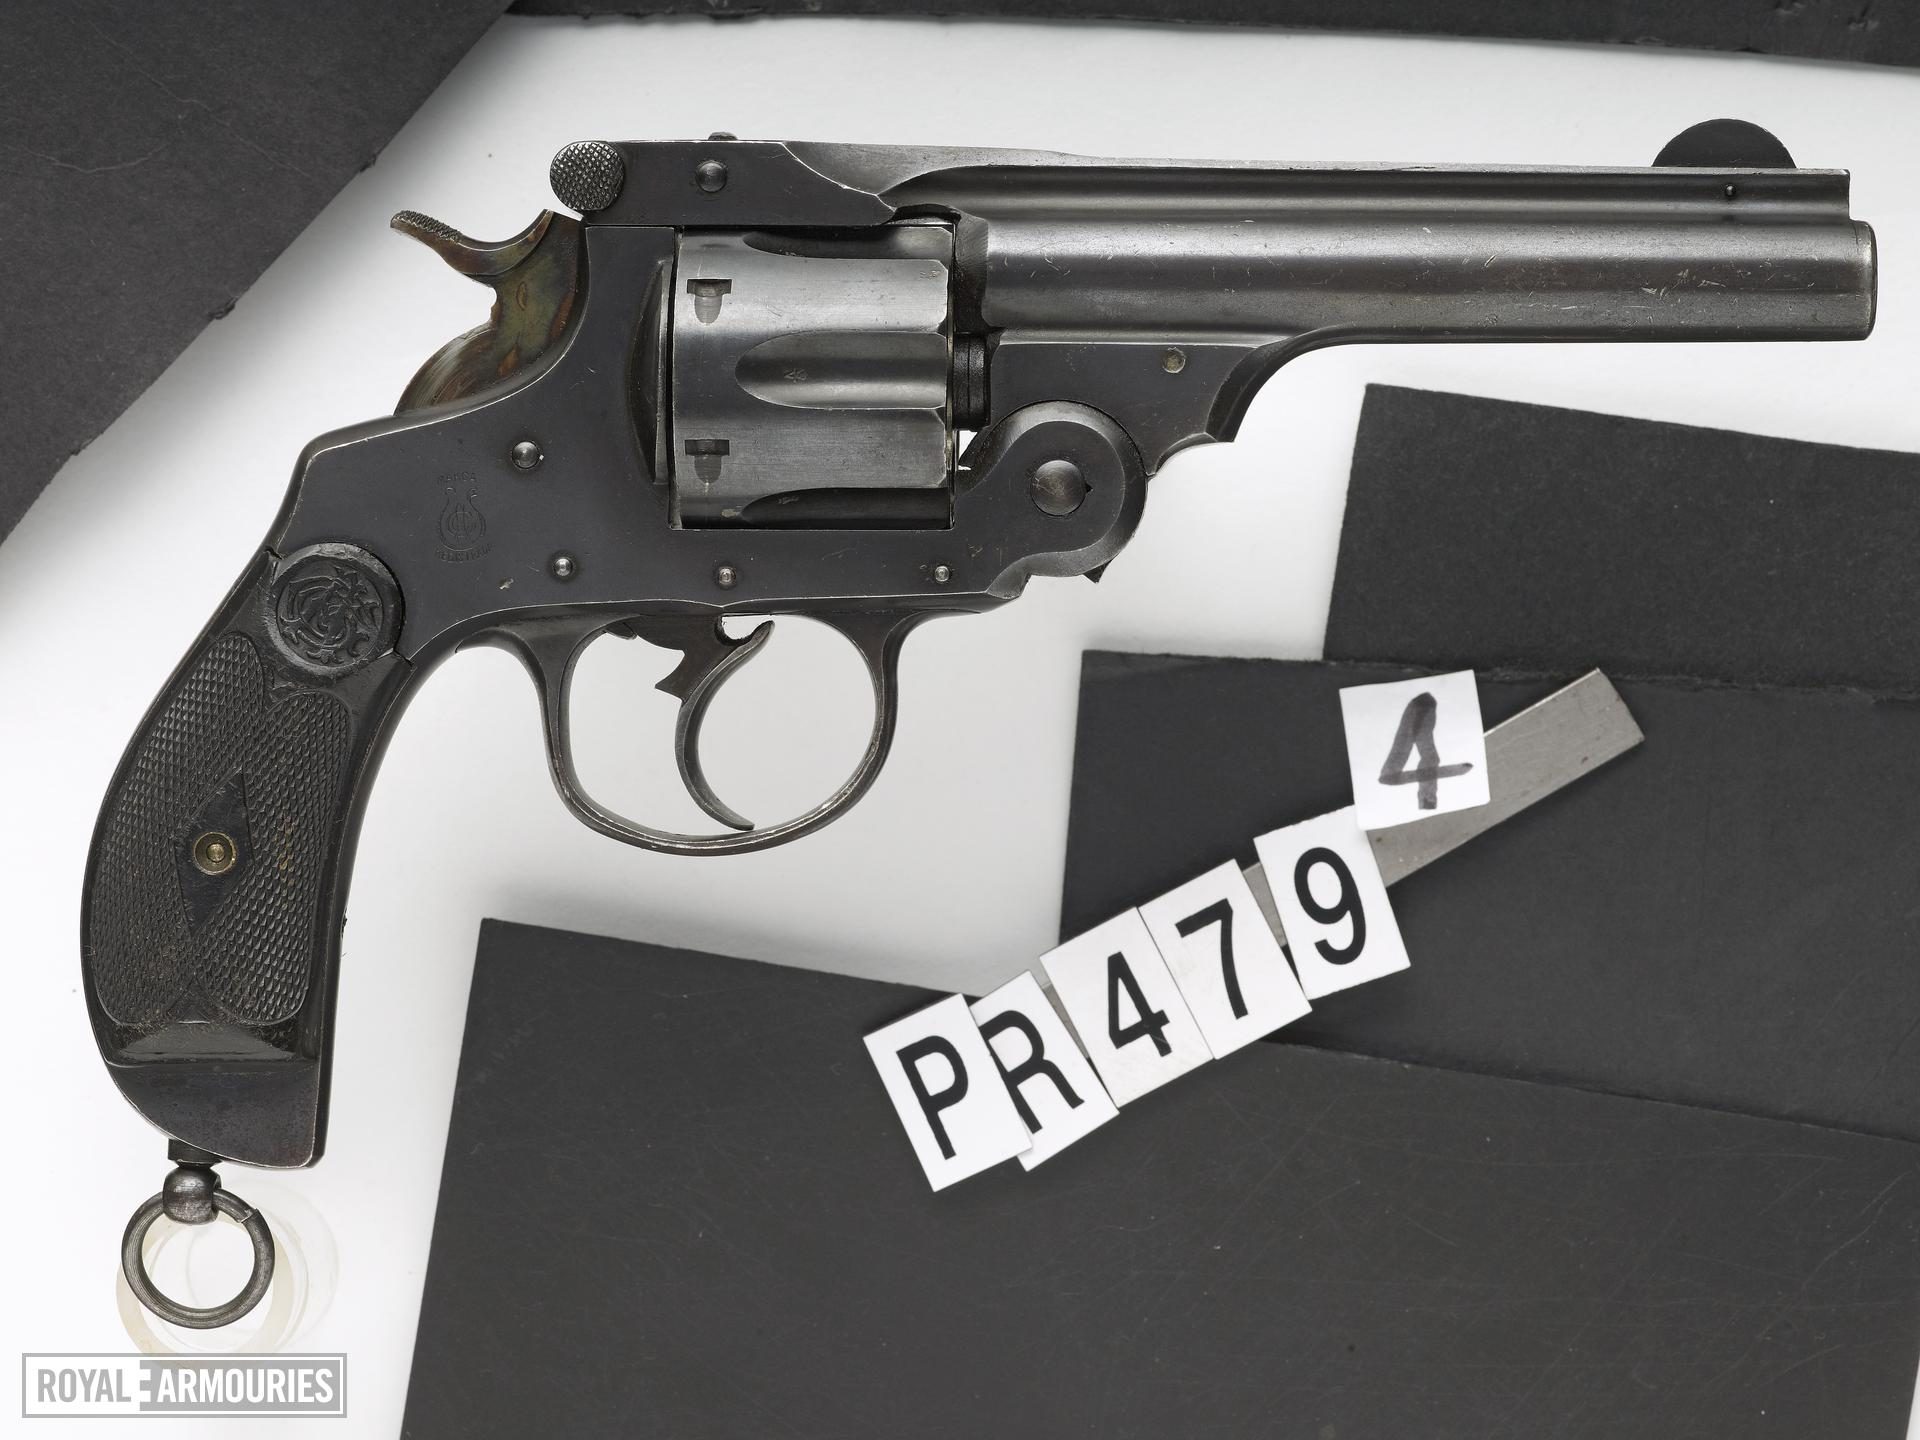 Centrefire six-shot revolver - Garate Anitua Y CIA Smith and Wesson type